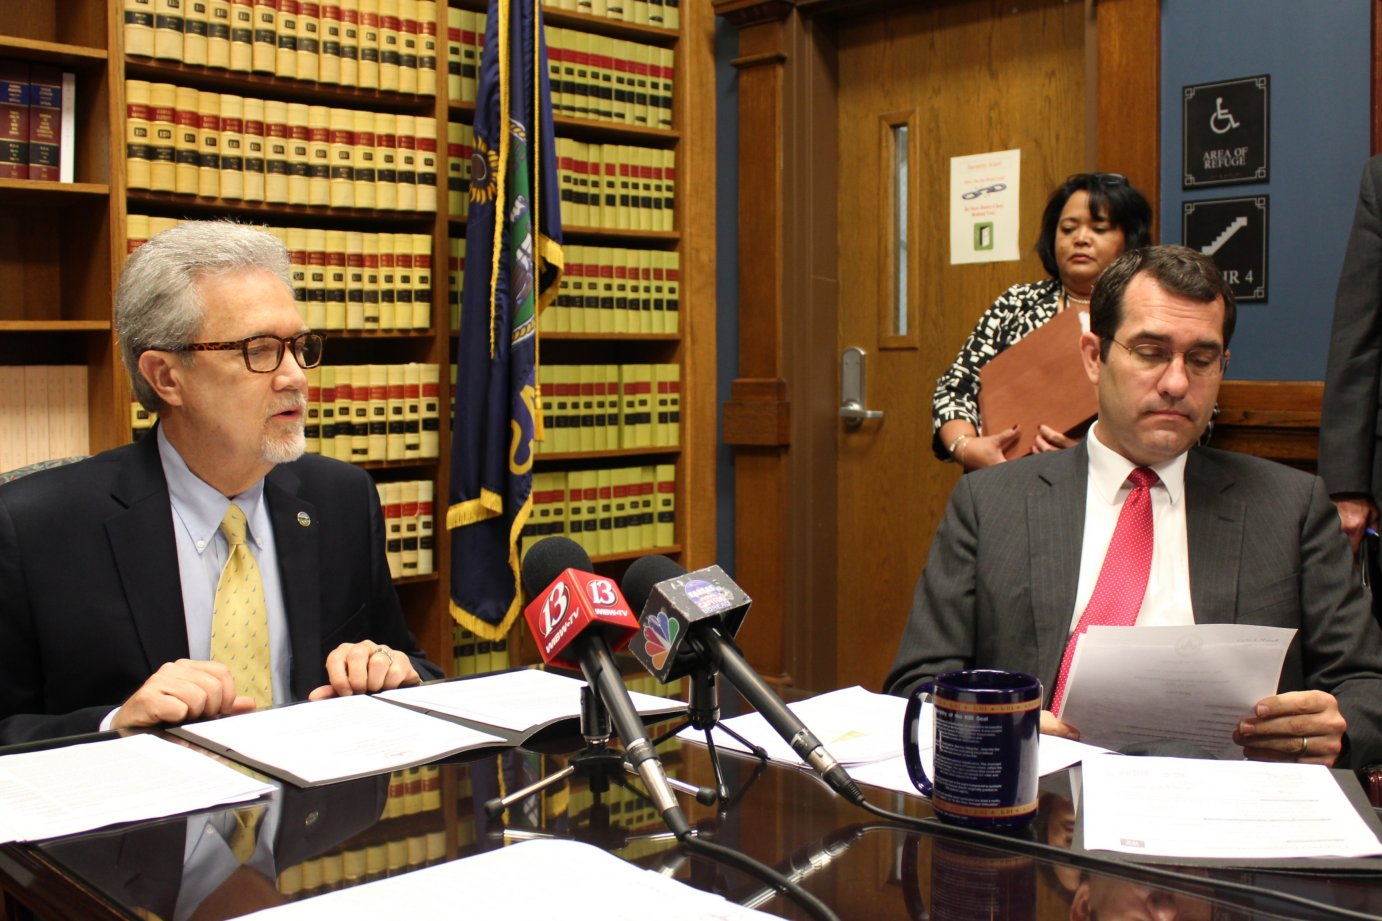 Assistant Secretary of State Eric Rucker (left) and Attorney General Derek Schmidt during the meeting Tuesday. (Photo by Stephen Koranda)